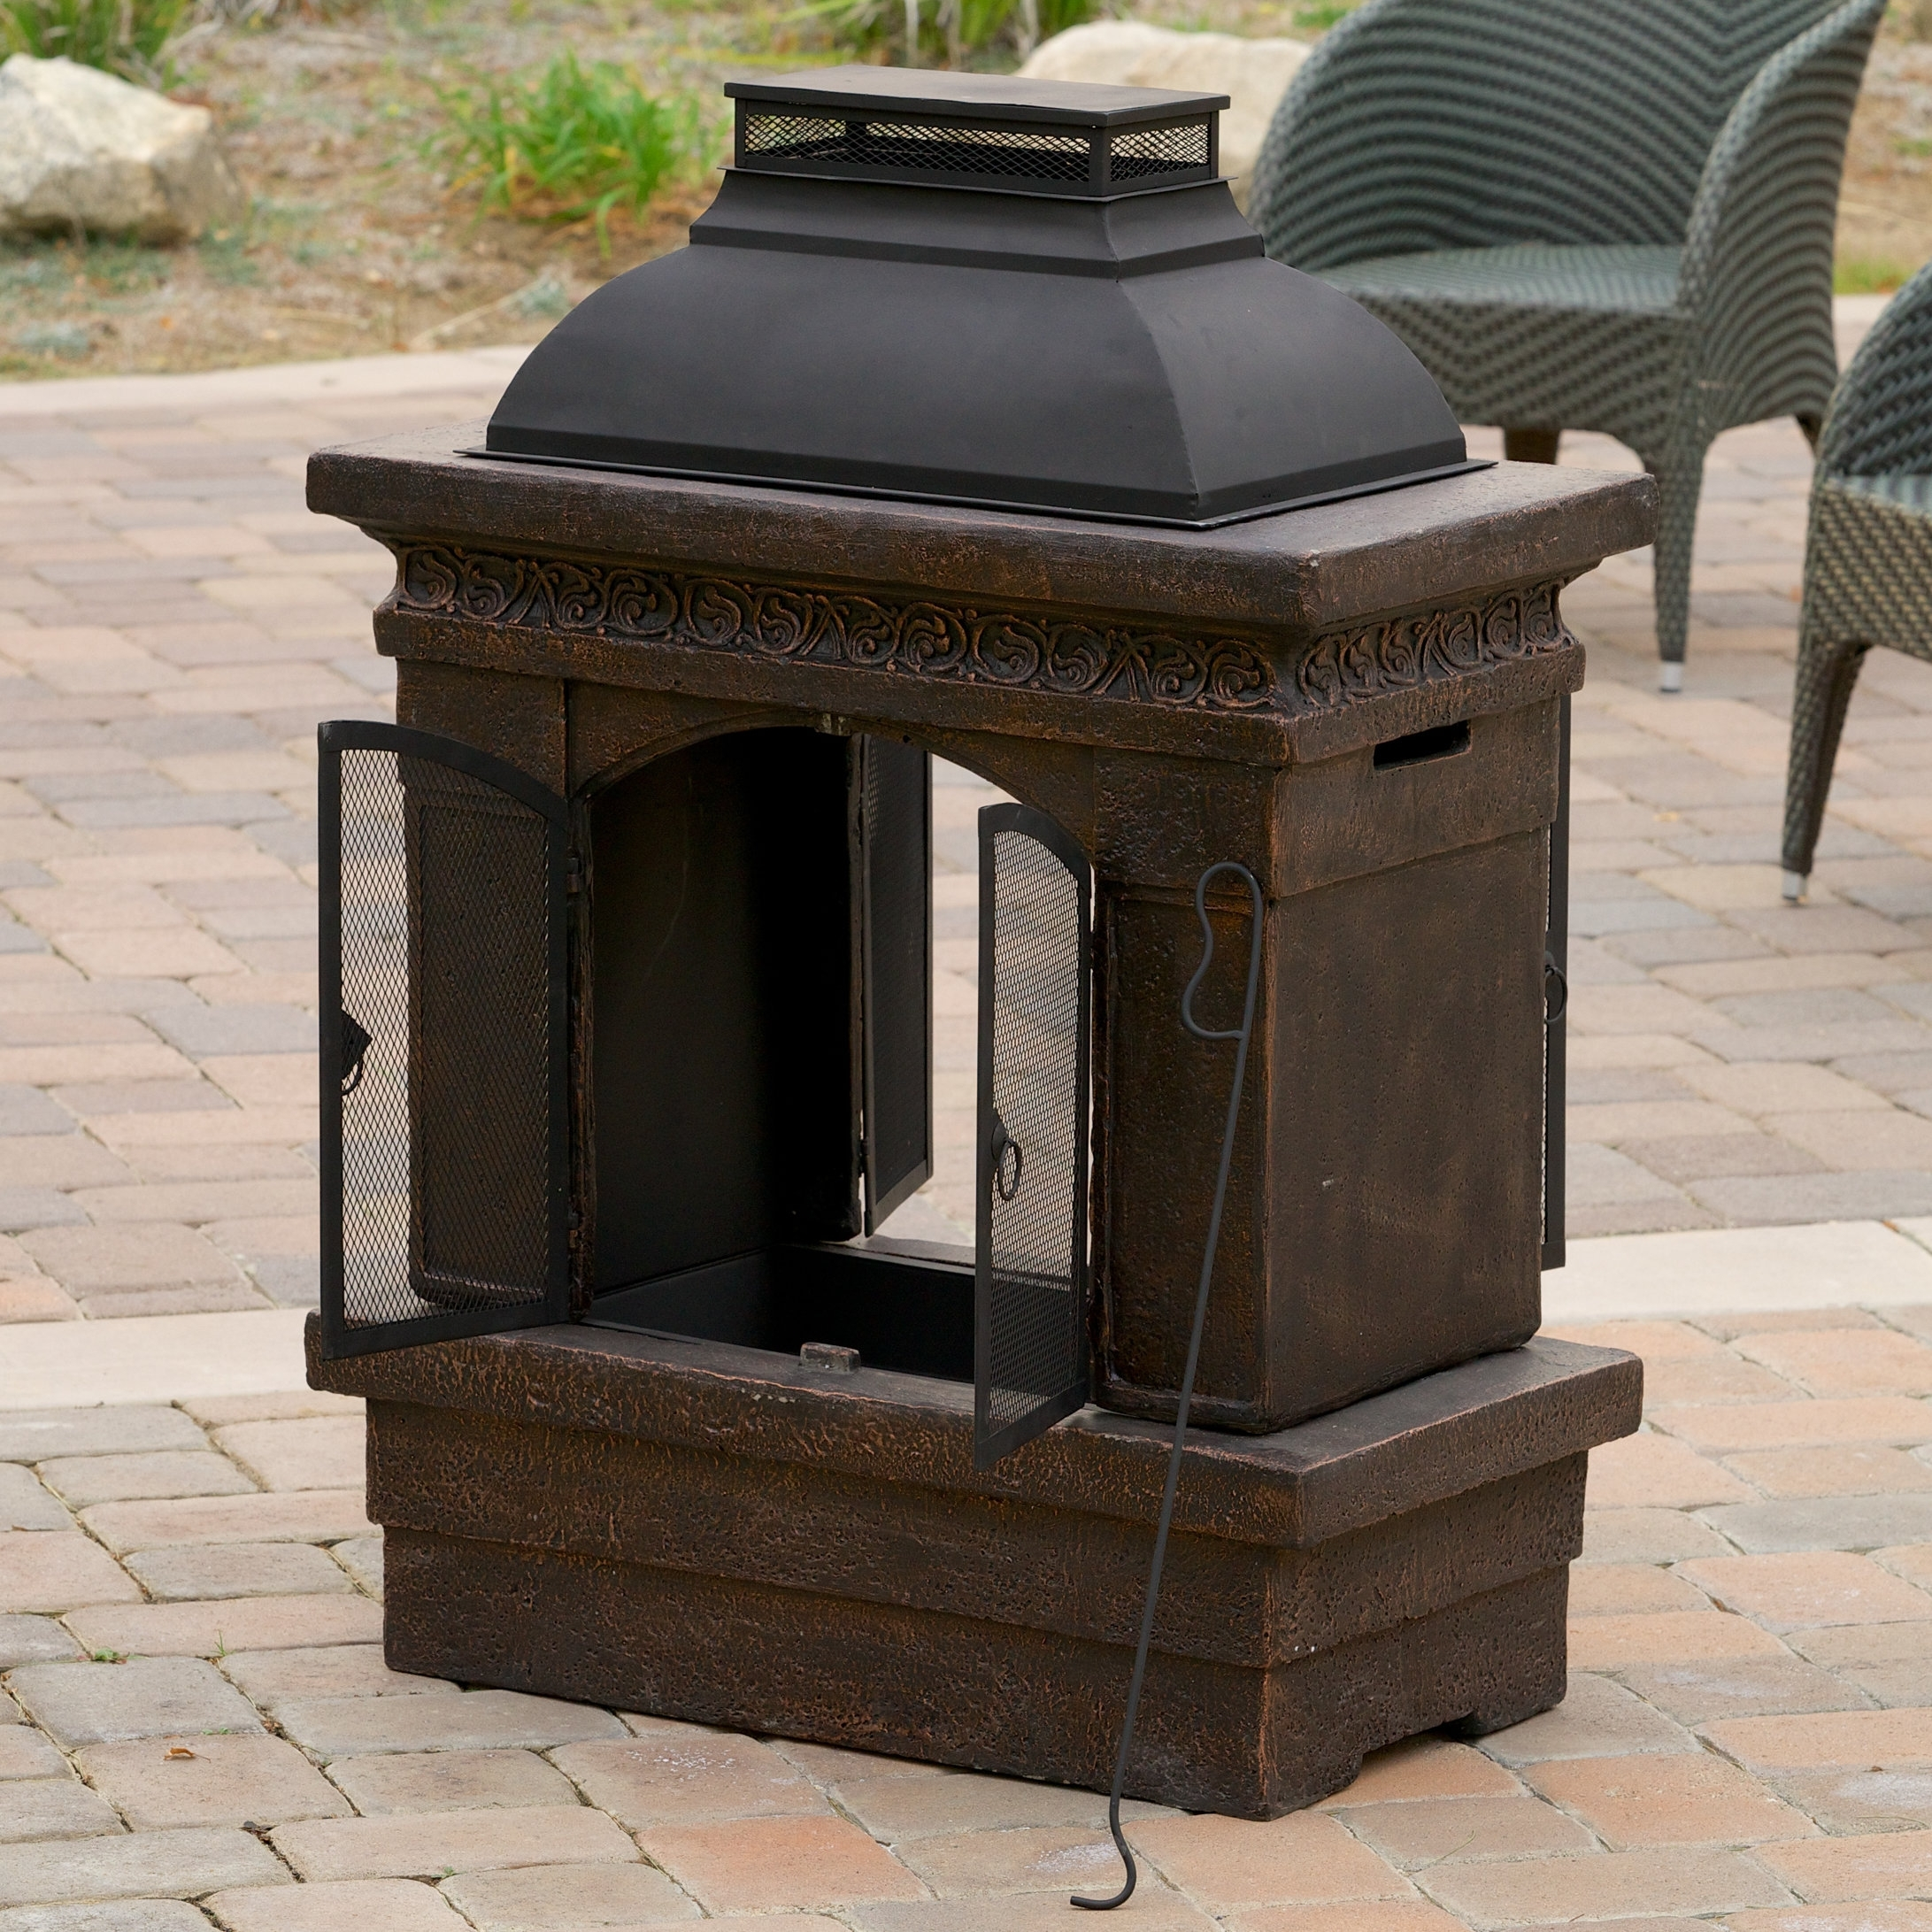 Mexican Large Clay Chiminea Outdoor Fireplace Randolph Indoor